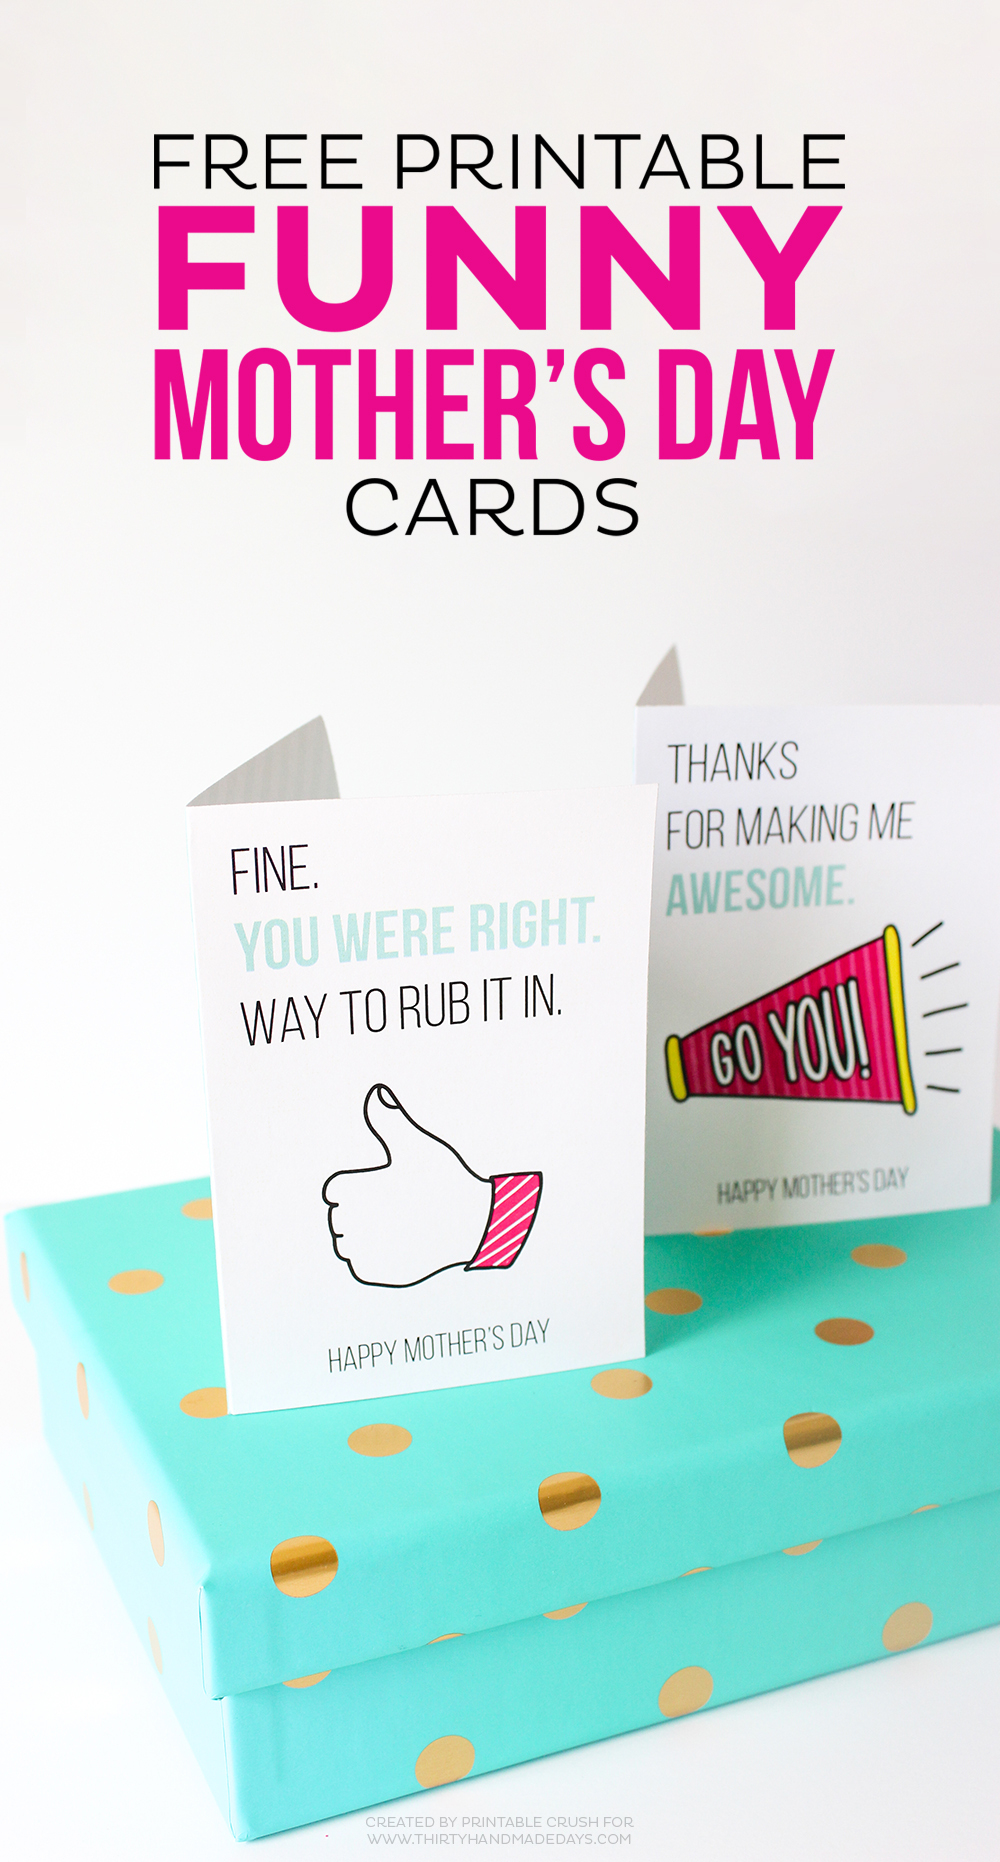 Printable Mother's Day Cards - Free Printable Funny Mother's Day Cards